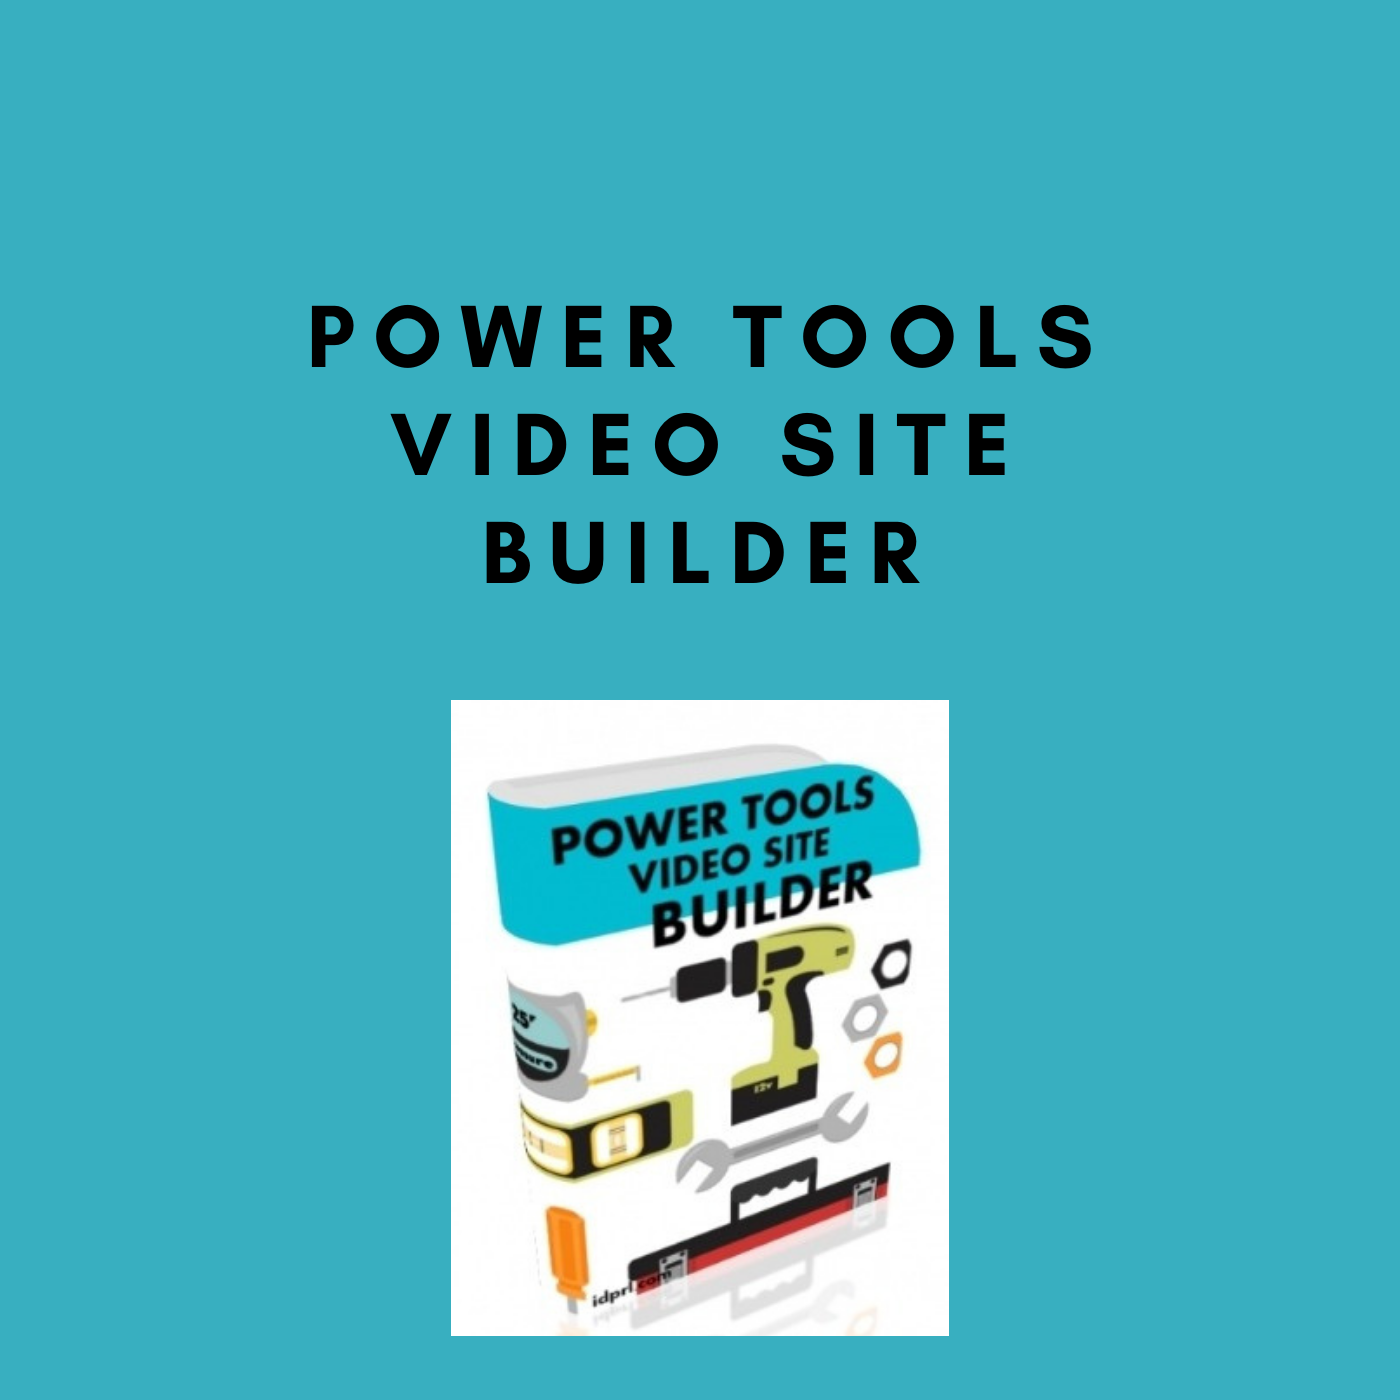 Power Tools Video Site Builder for making video site